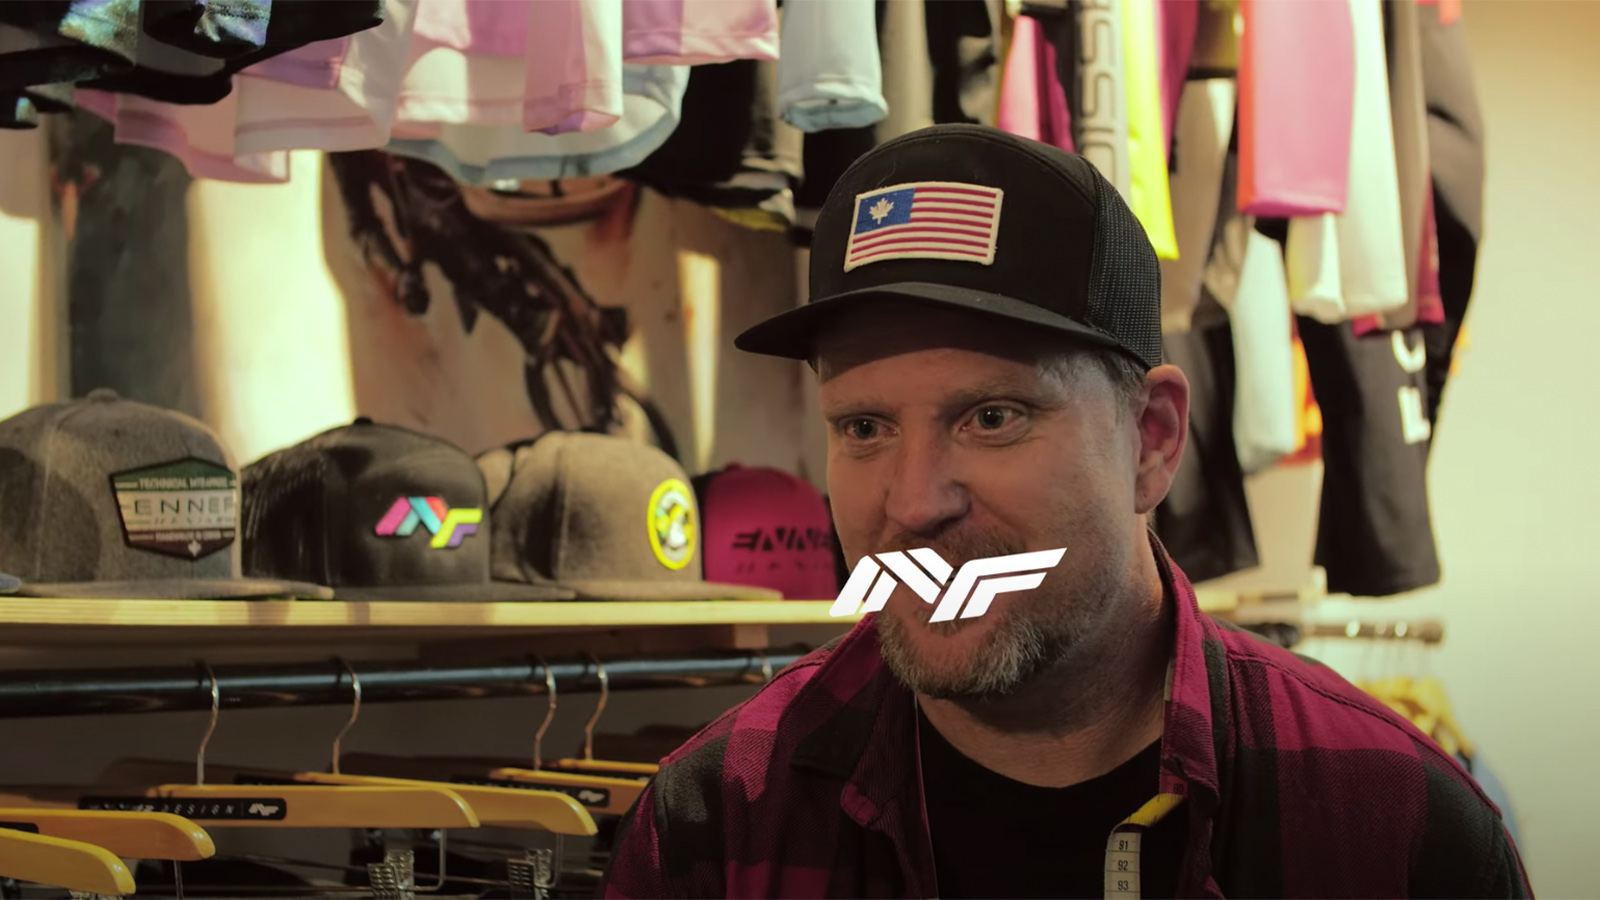 Who is NF? Get a Look at Who Is Behind the Brand and What Drives Them